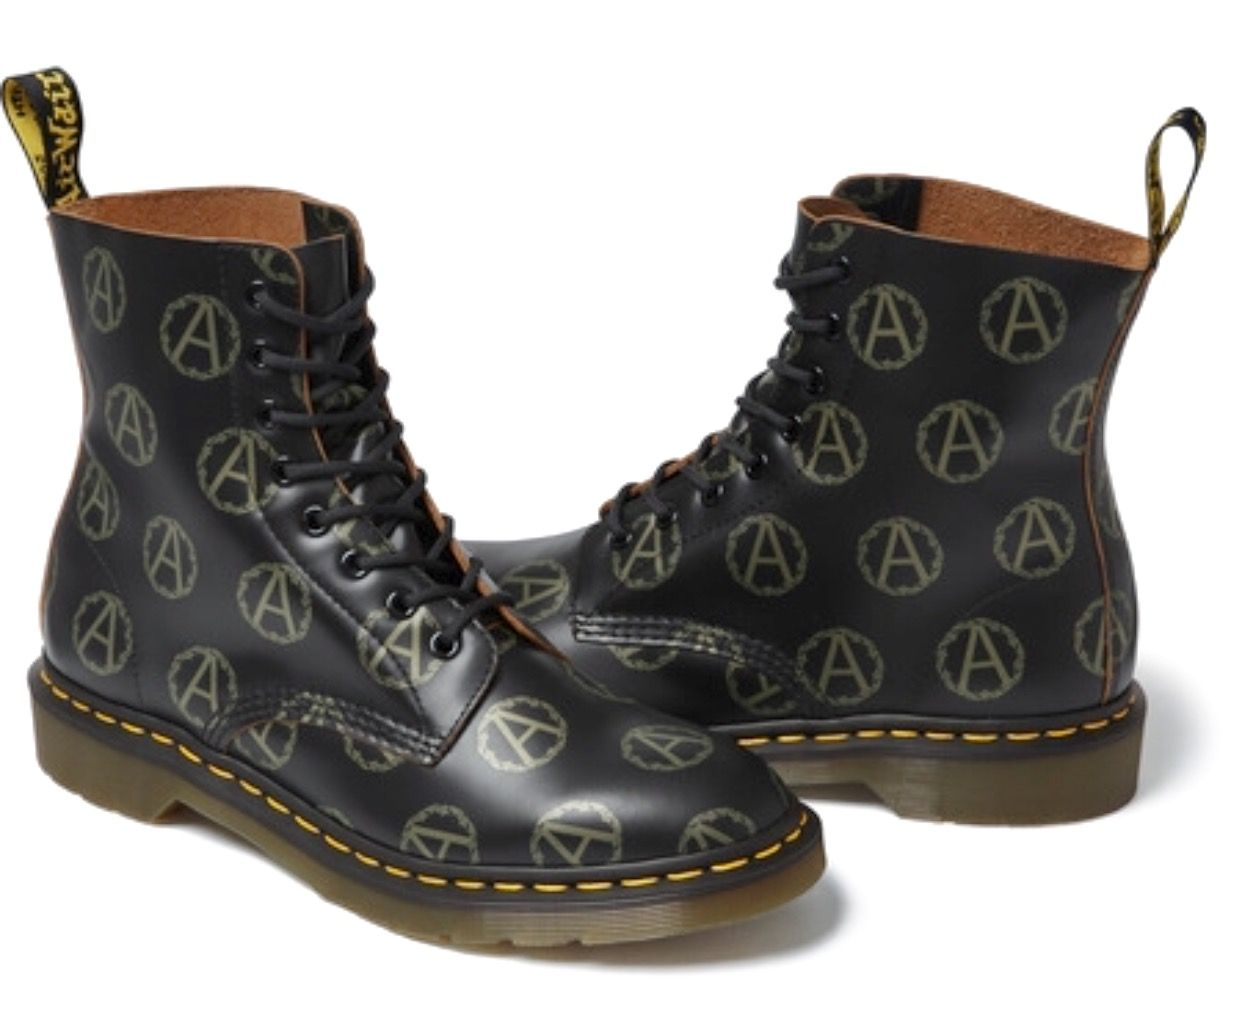 7c21dcb73417 Dr Marten Limited Edition Supreme X Undercover Anarchy boot | Dr ...